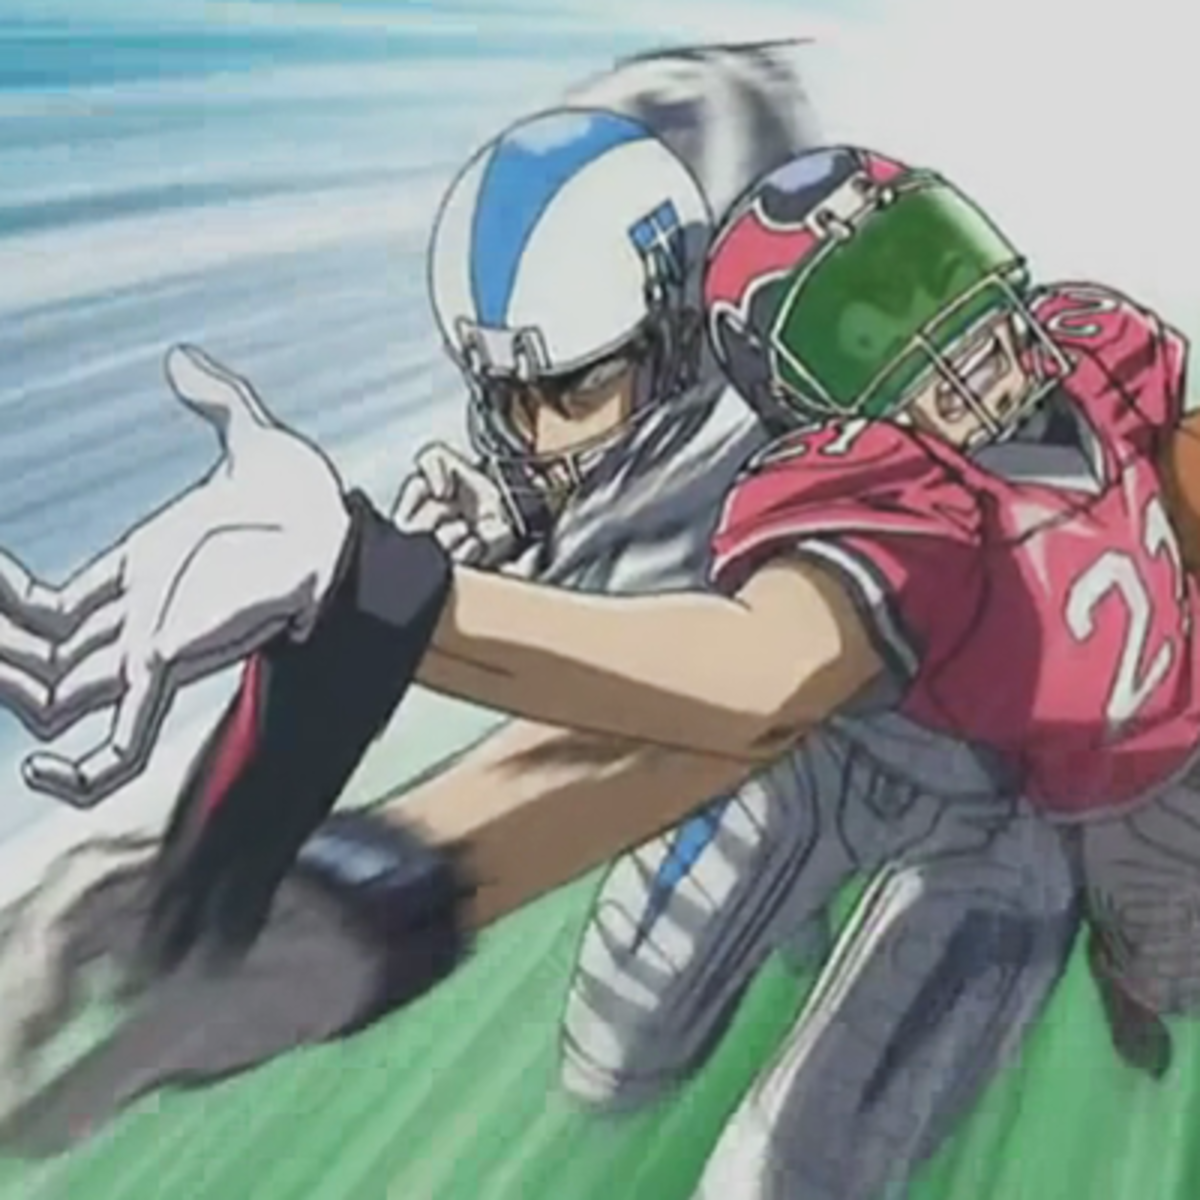 Eyeshield defeated by Shin